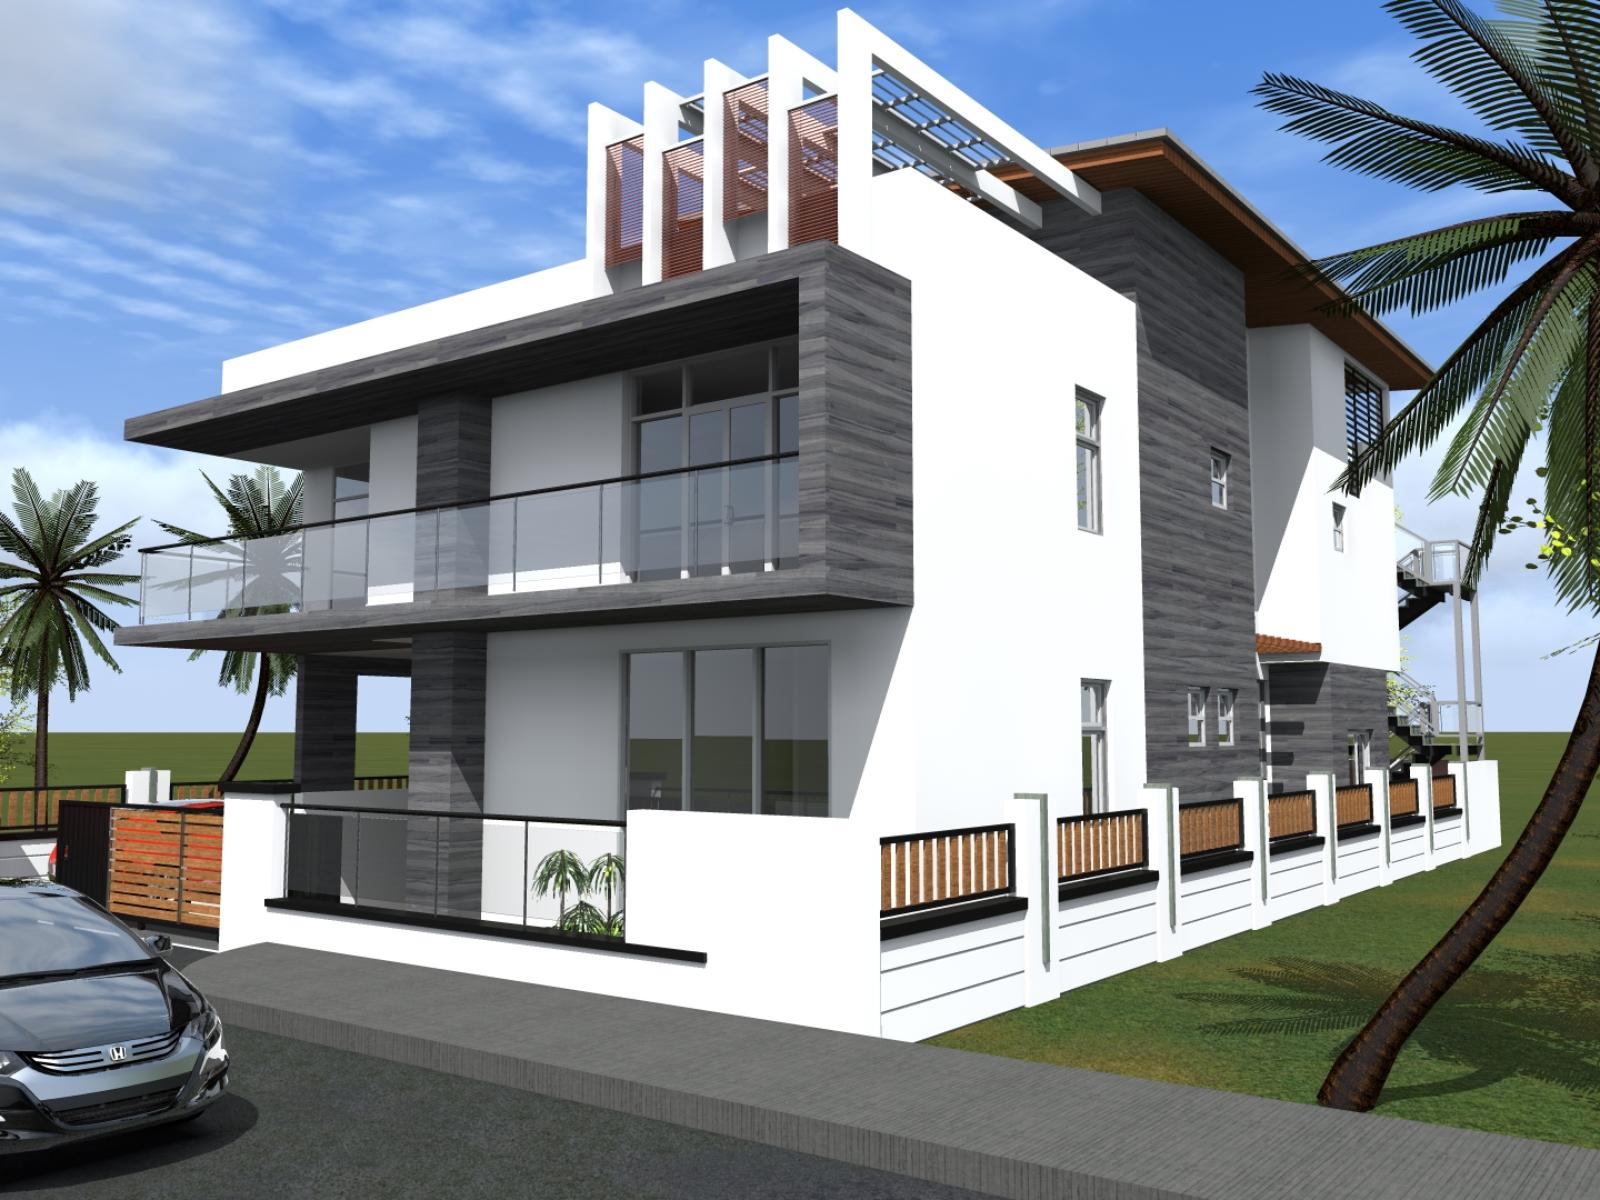 can anyone design me this kind of house in solidworks 2013 grabcad